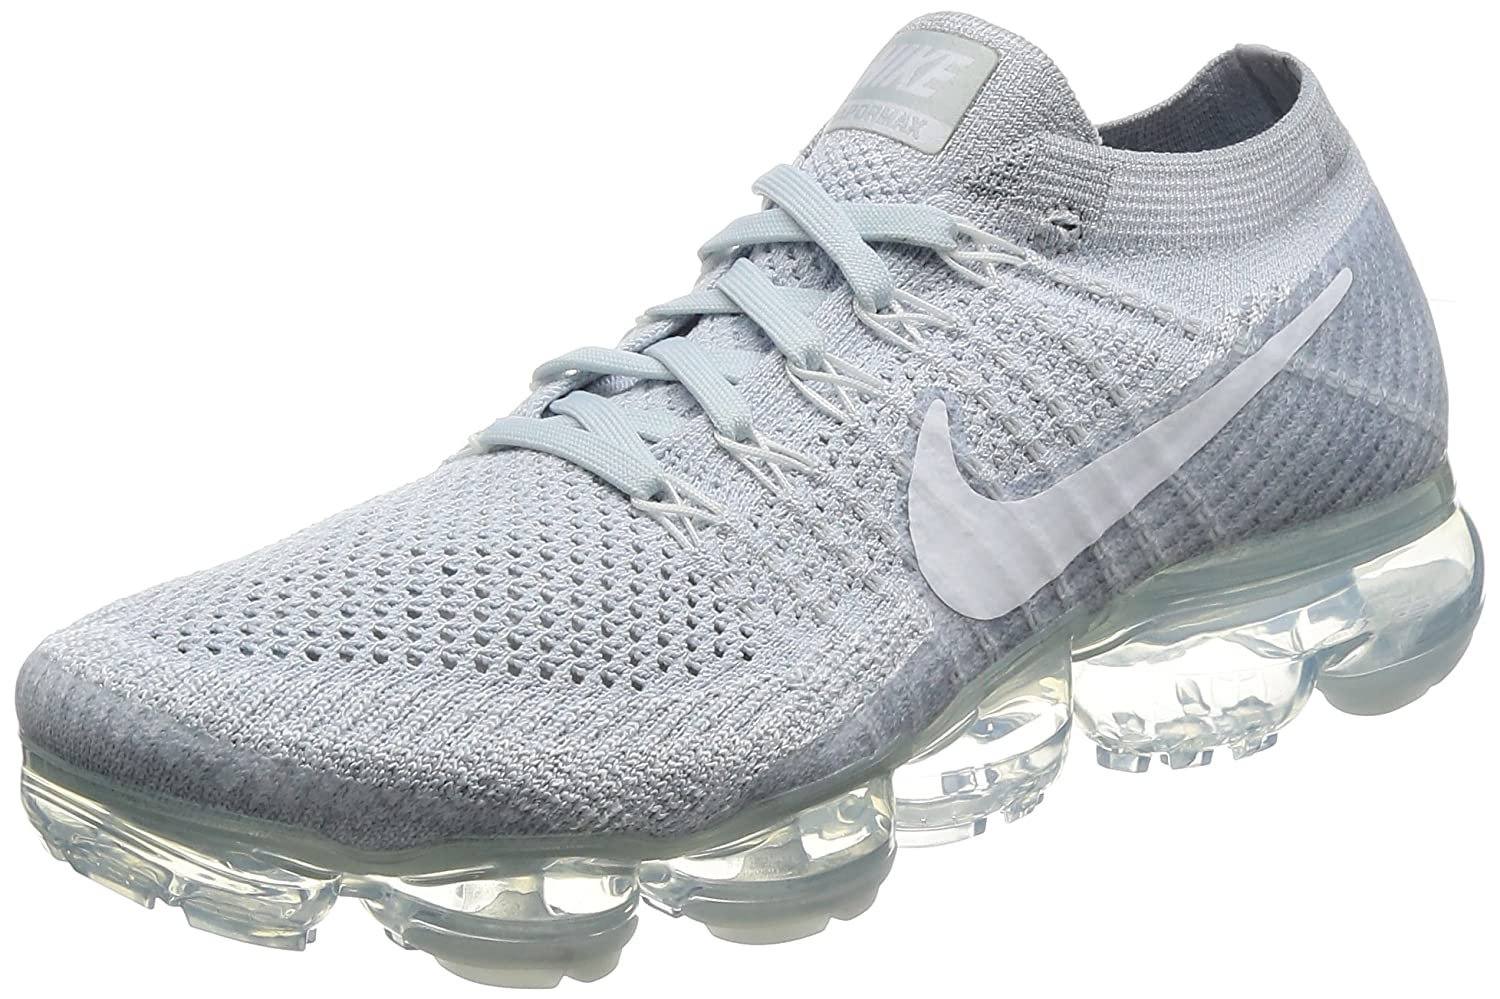 7ae041d20b Amazon.com | Men's Nike Air Vapormax Flyknit Running Shoe | Fashion Sneakers